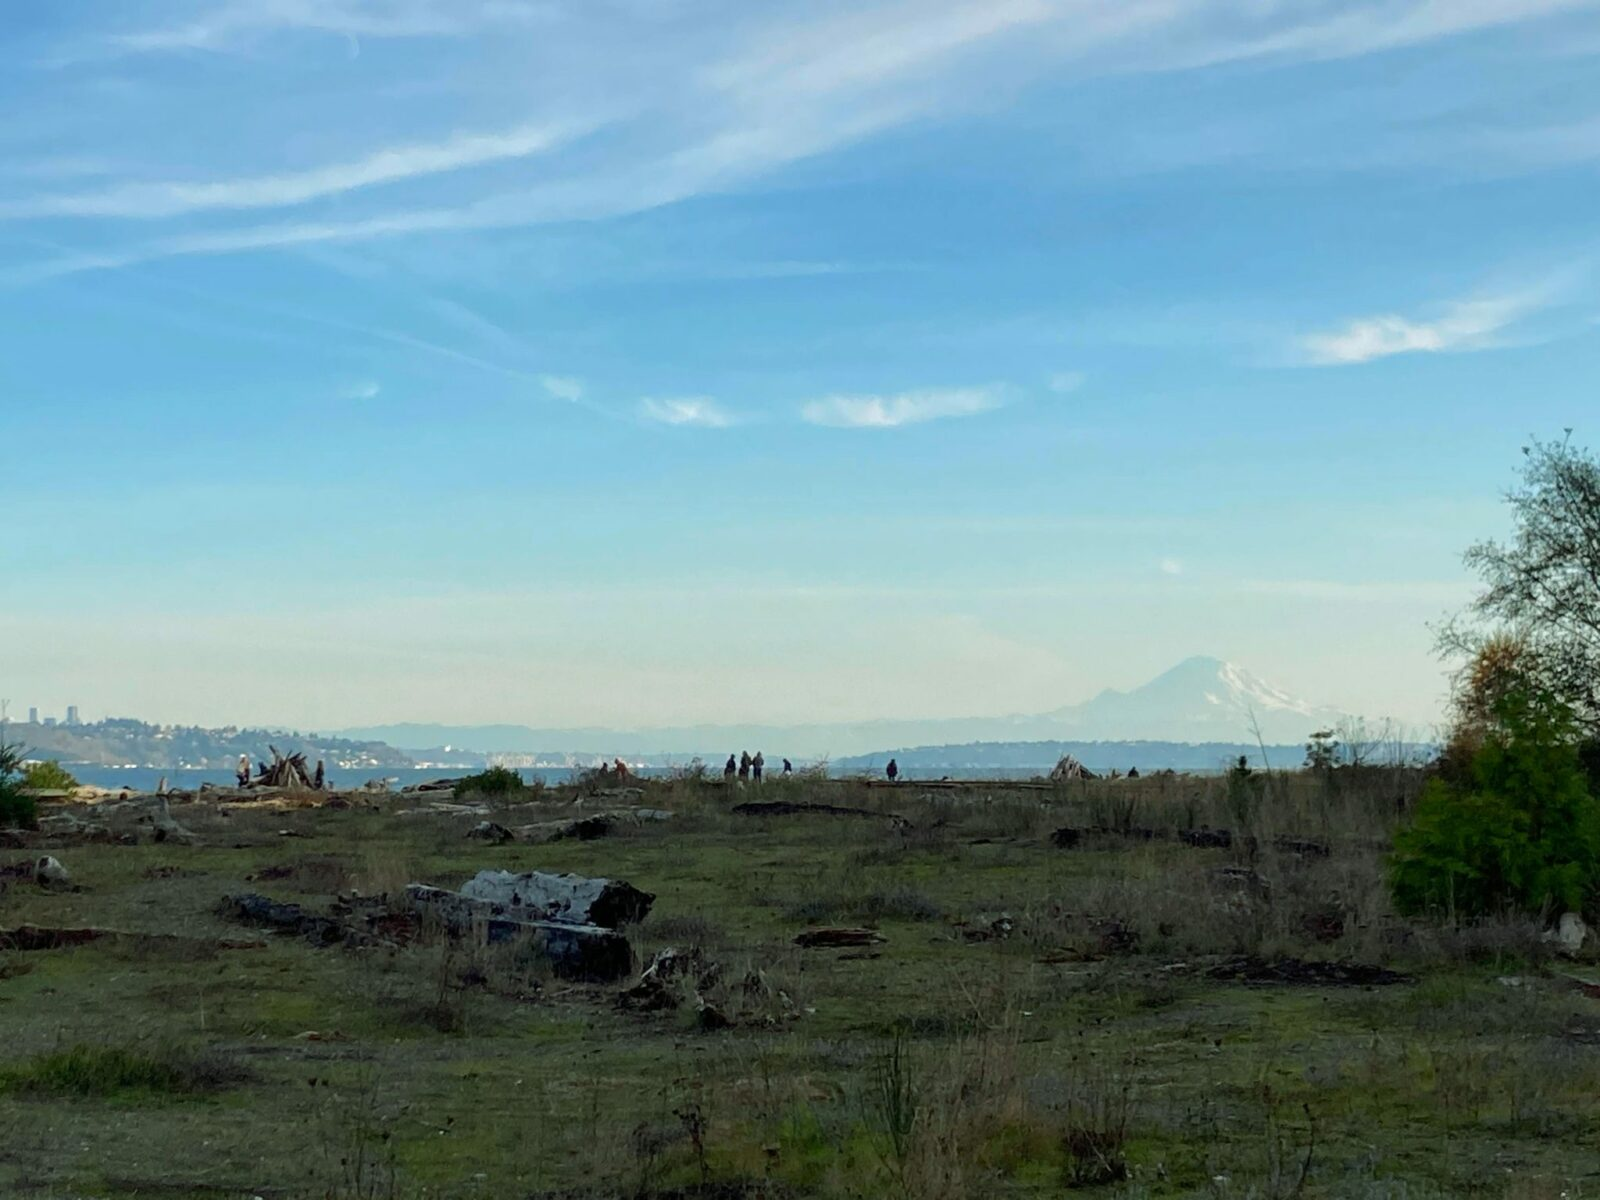 One of the best things to do on Bainbridge Island is visit Faye Bainbridge Park. The park has grass, driftwood and people are walking along the beach. You can see the water and mountains and a city in the distance